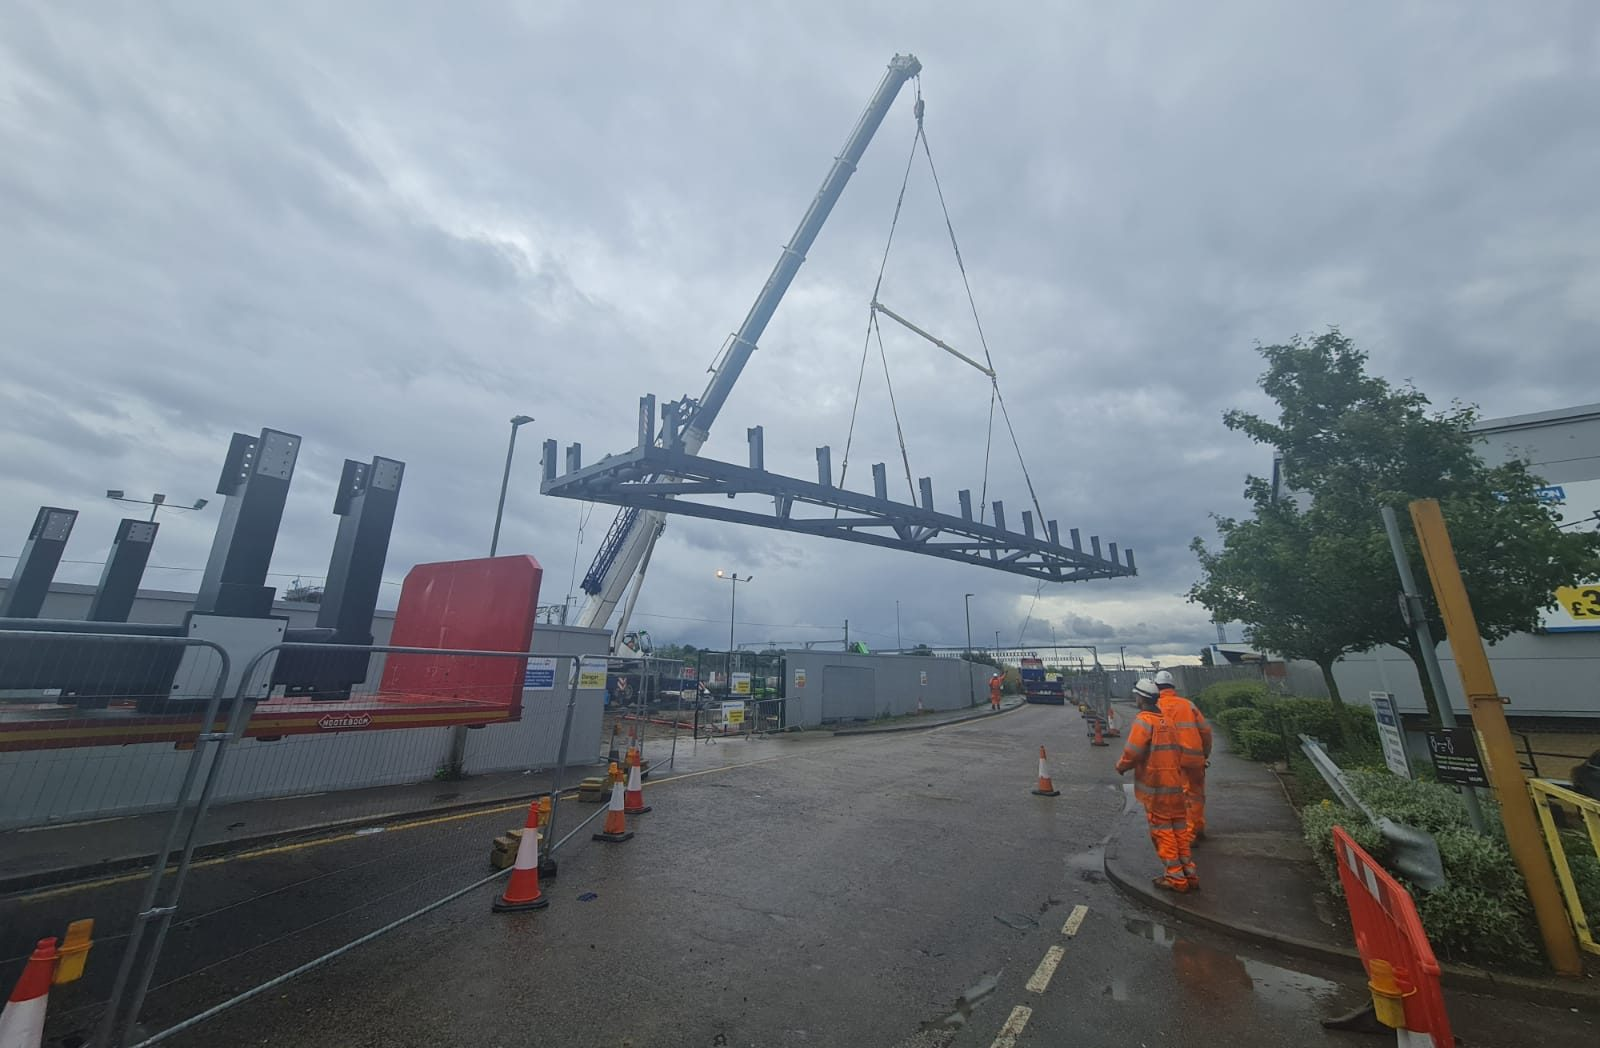 The Western Overbridge being delivered at Brent Cross West station